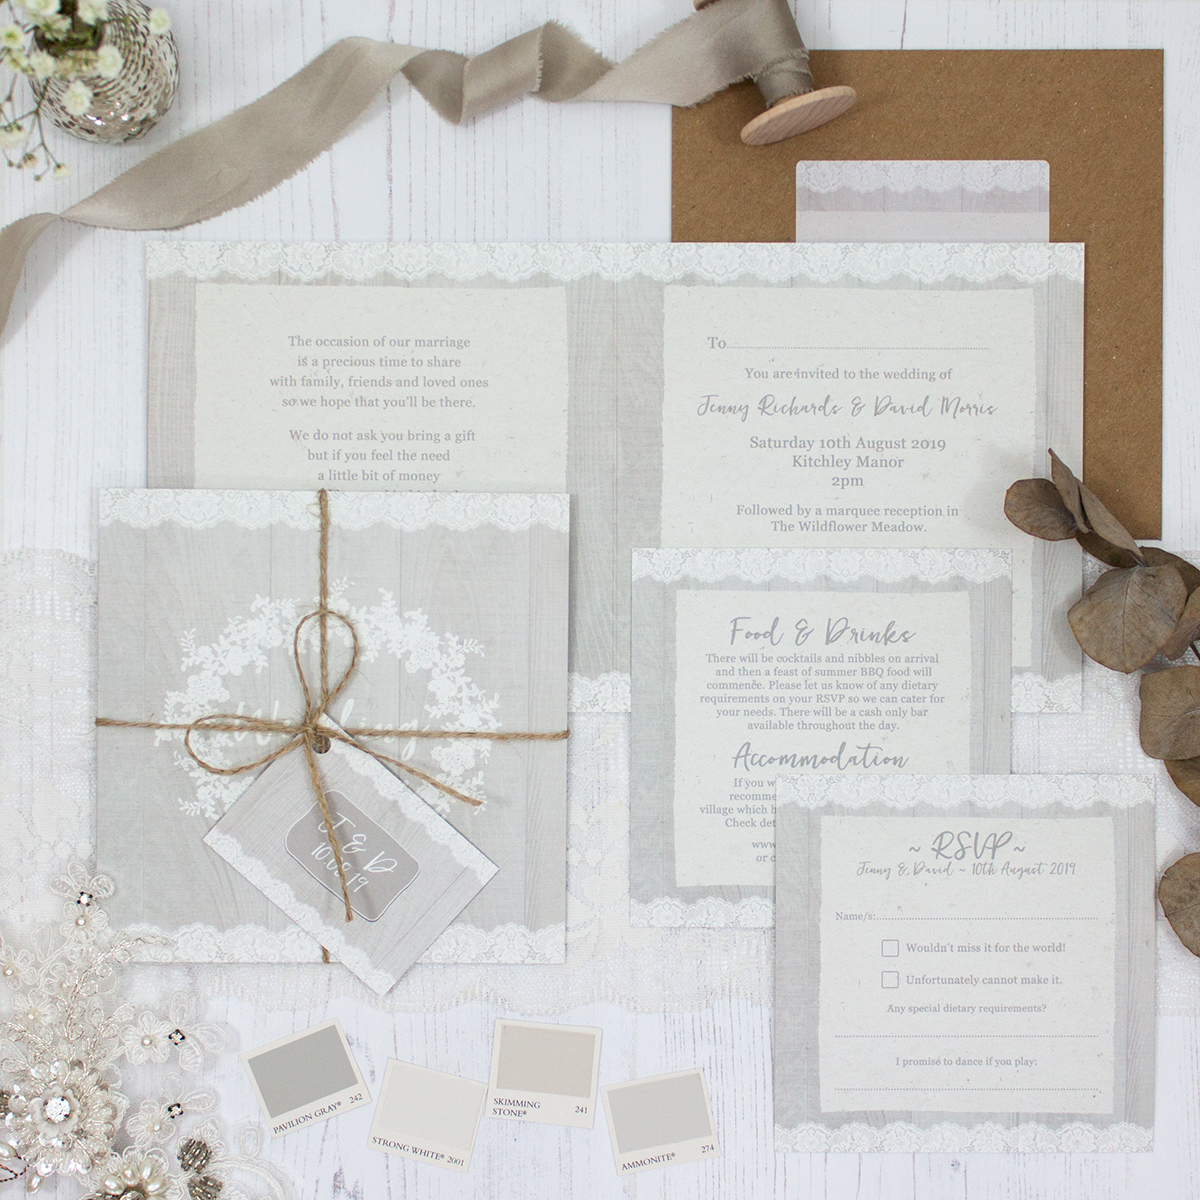 Grey Whisper Wedding showing invitation